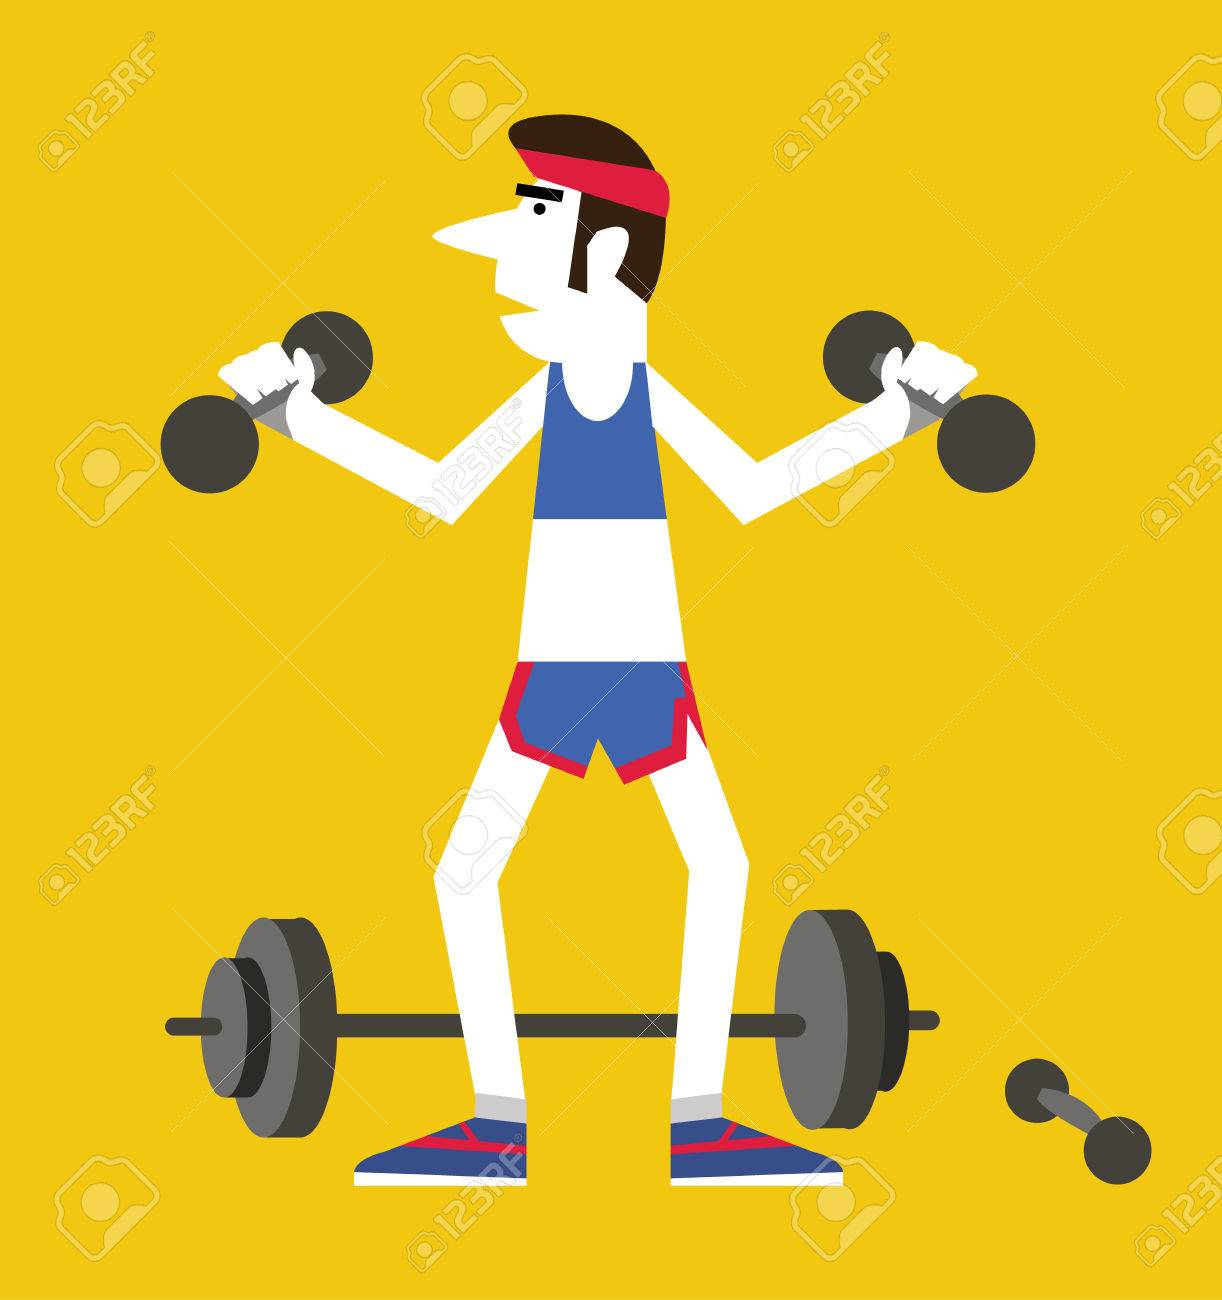 Retro man holding dumbbells and squats ,Exercising healthy concept. flat vector illustration - 31280650